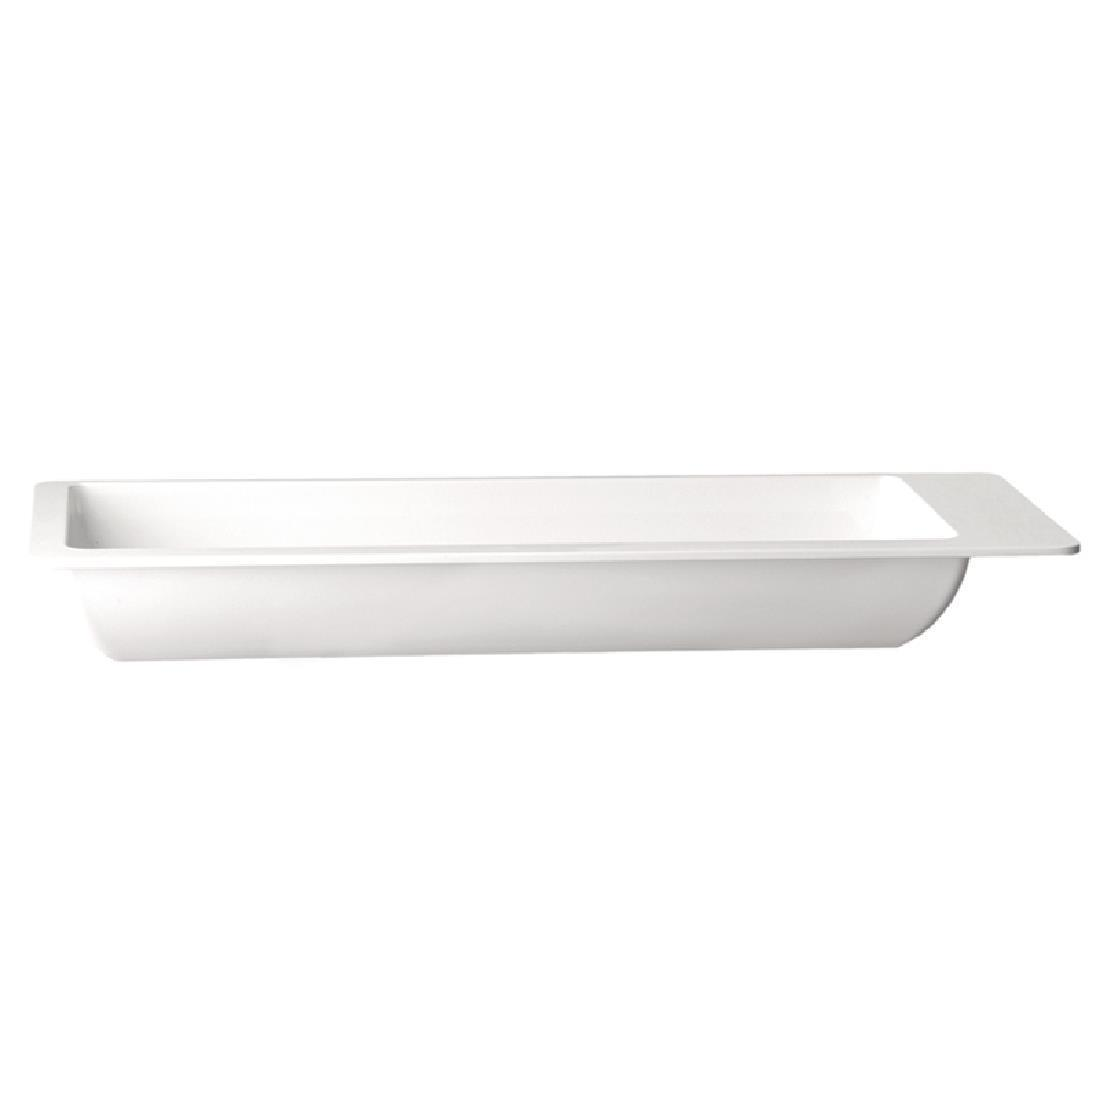 APS Apart Rectangular Buffet Tray 530 x 165mm - Each - GD112